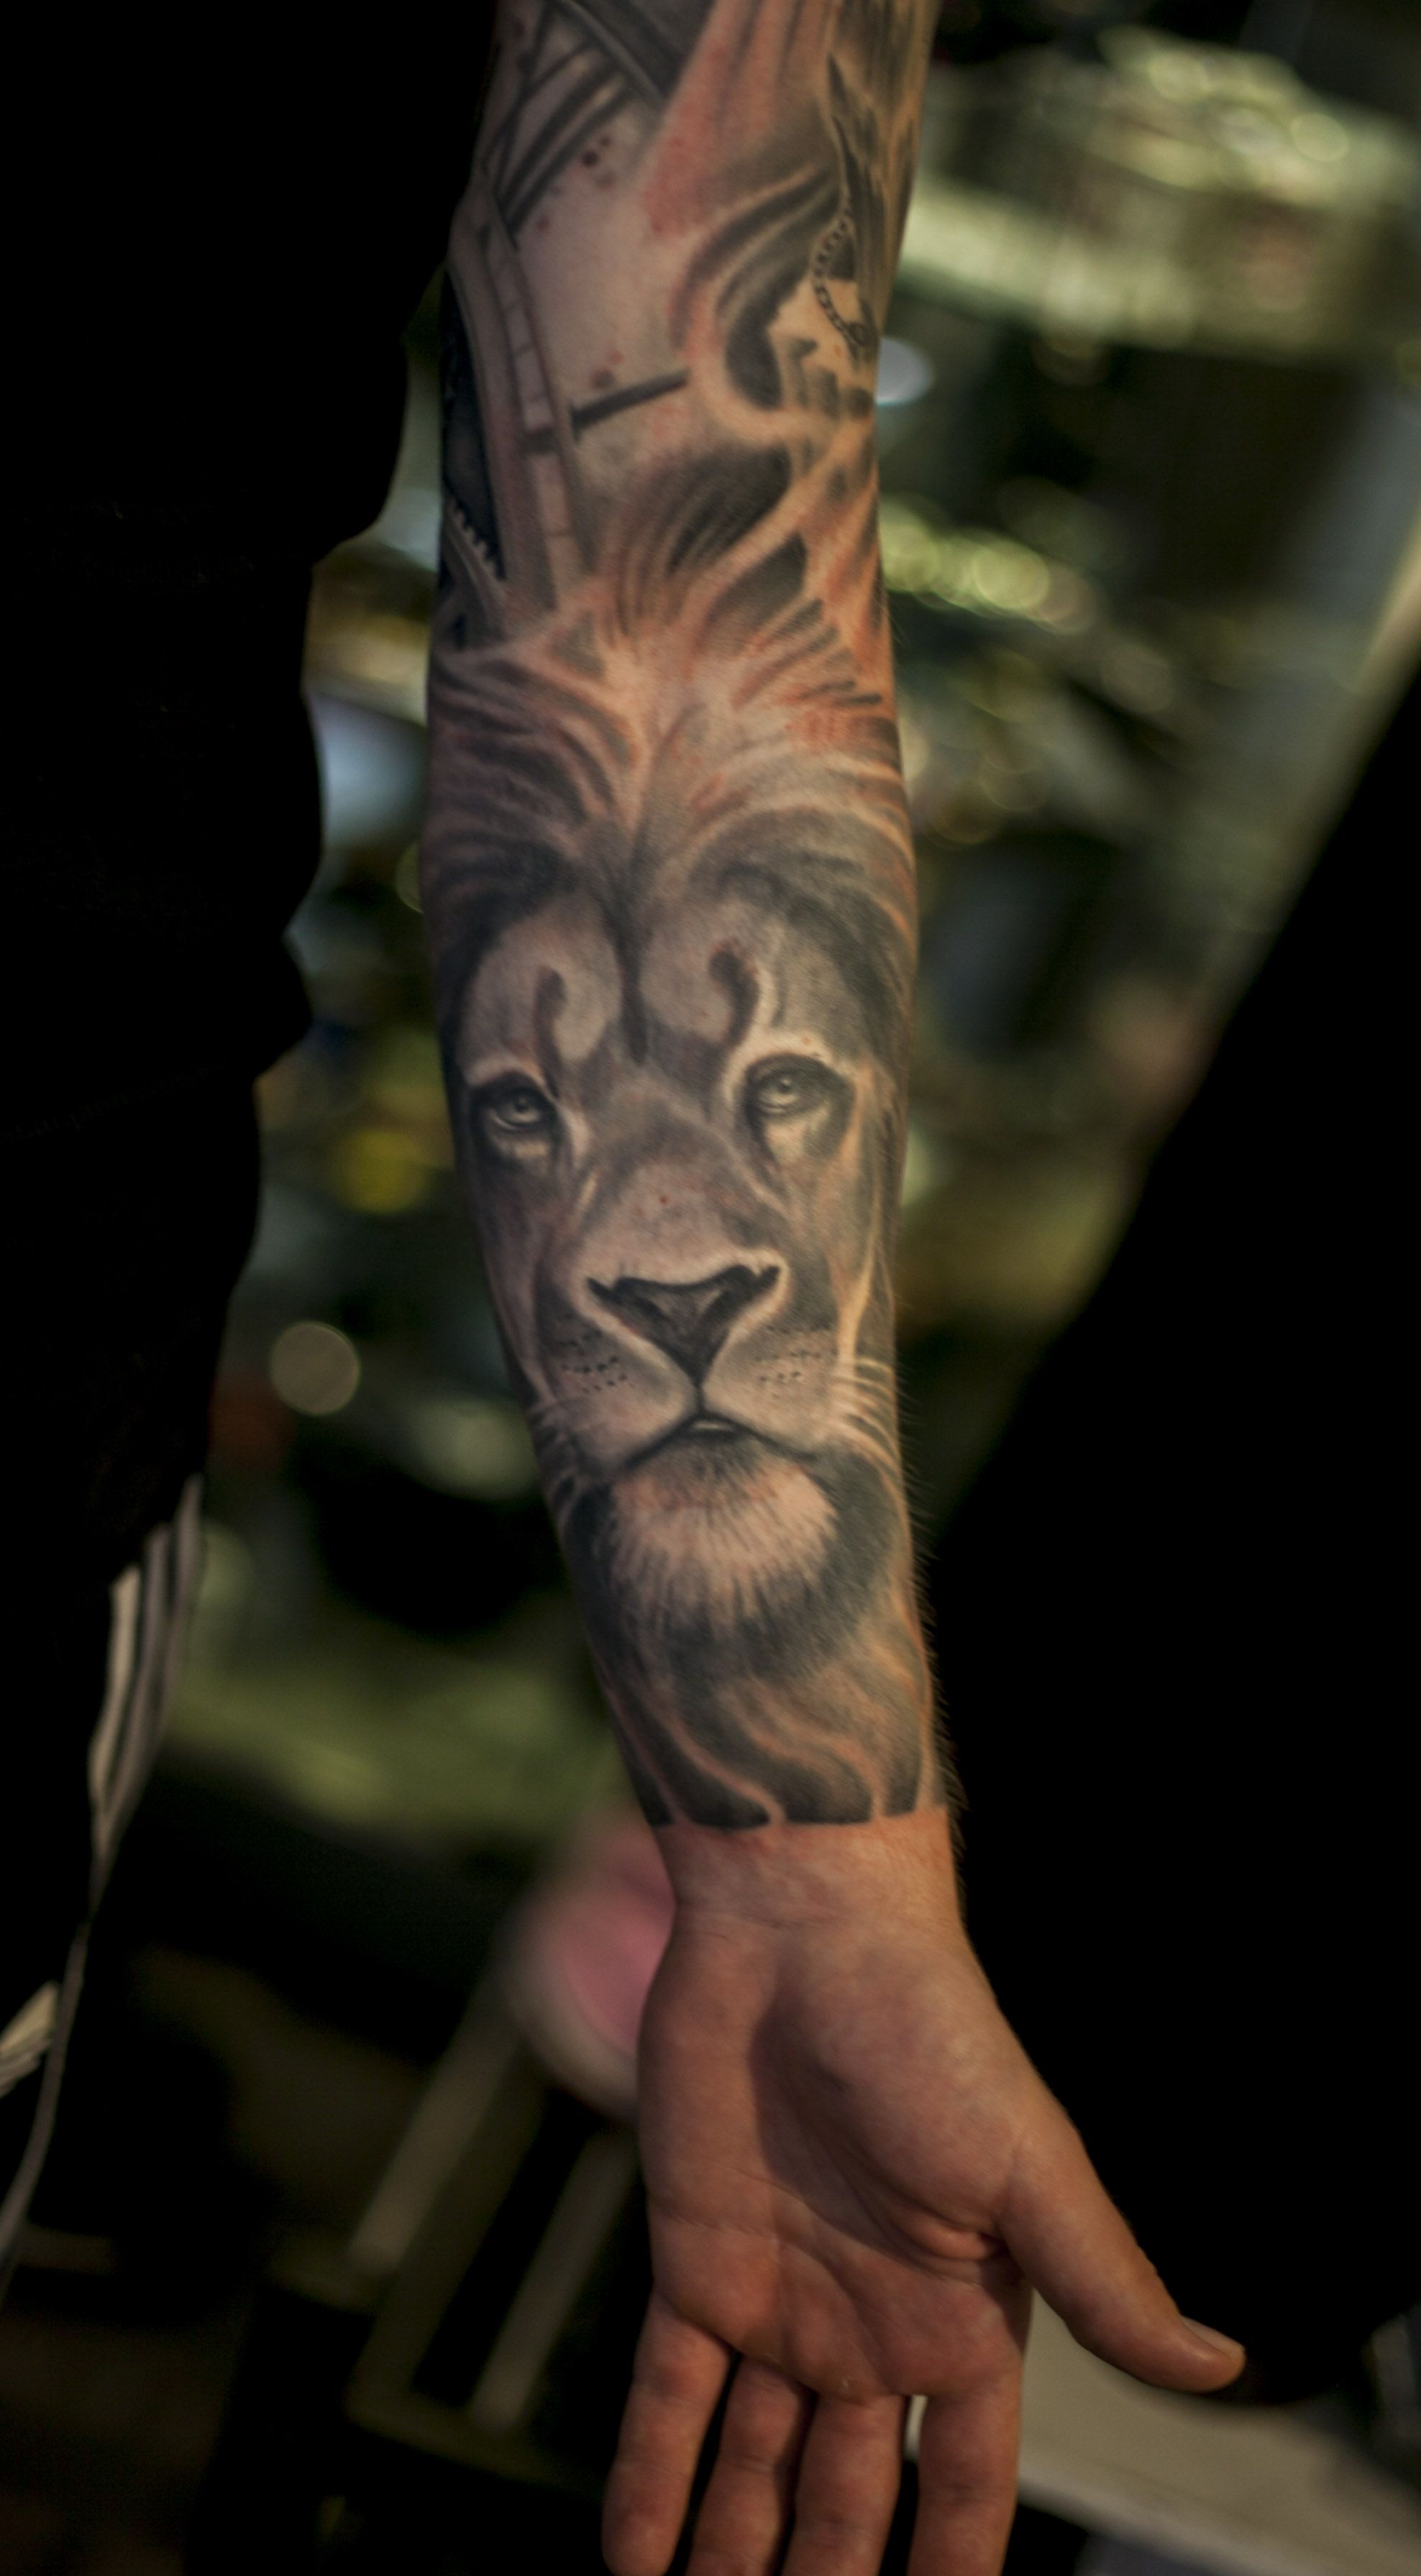 Super Cool Black And Grey Realistic Tiger And Animal Sleeve Tattoo By Daniel Dufo East Street Tattoo Supply Stockho Street Tattoo Grey Tattoo Dragon Tattoo